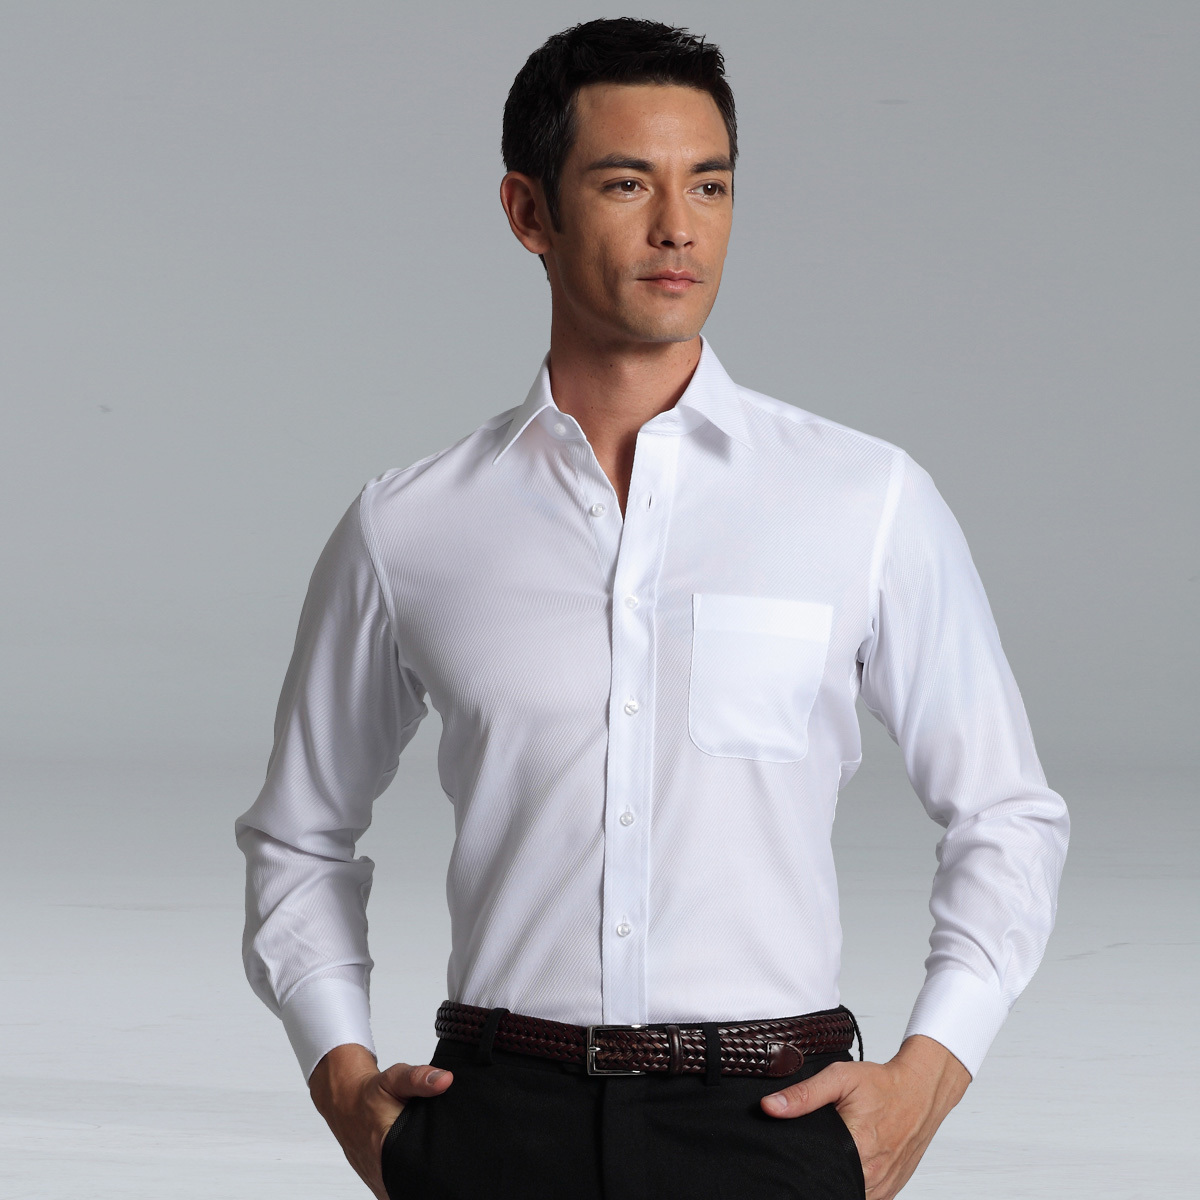 Find great deals on eBay for Mens White Dress Shirts in Dress Shirts for Men. Shop with confidence.